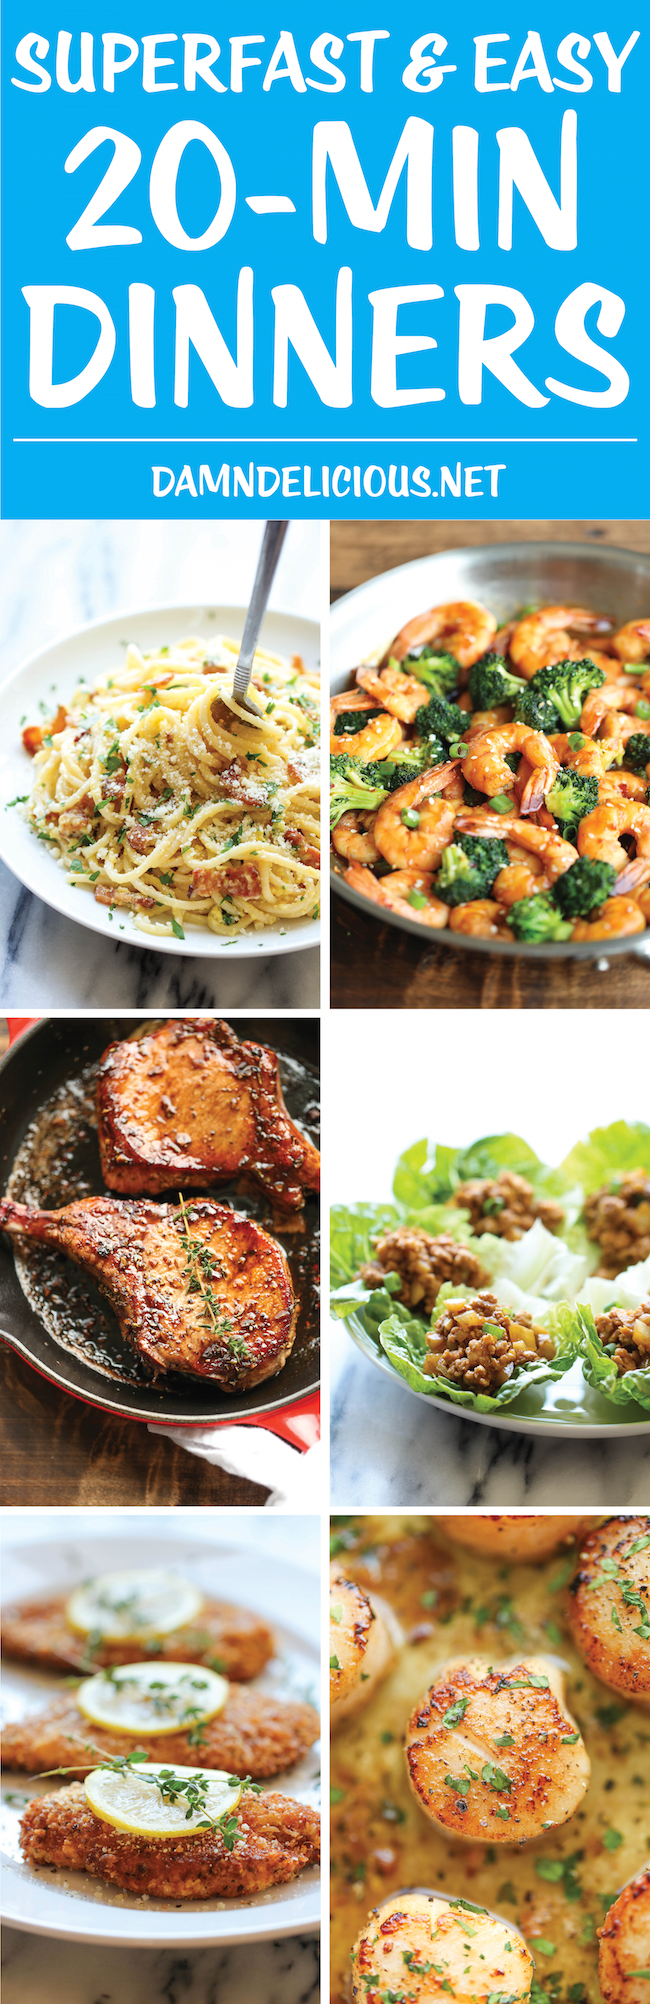 10 Superfast And Easy 20 Minute Dinners Damn Delicious